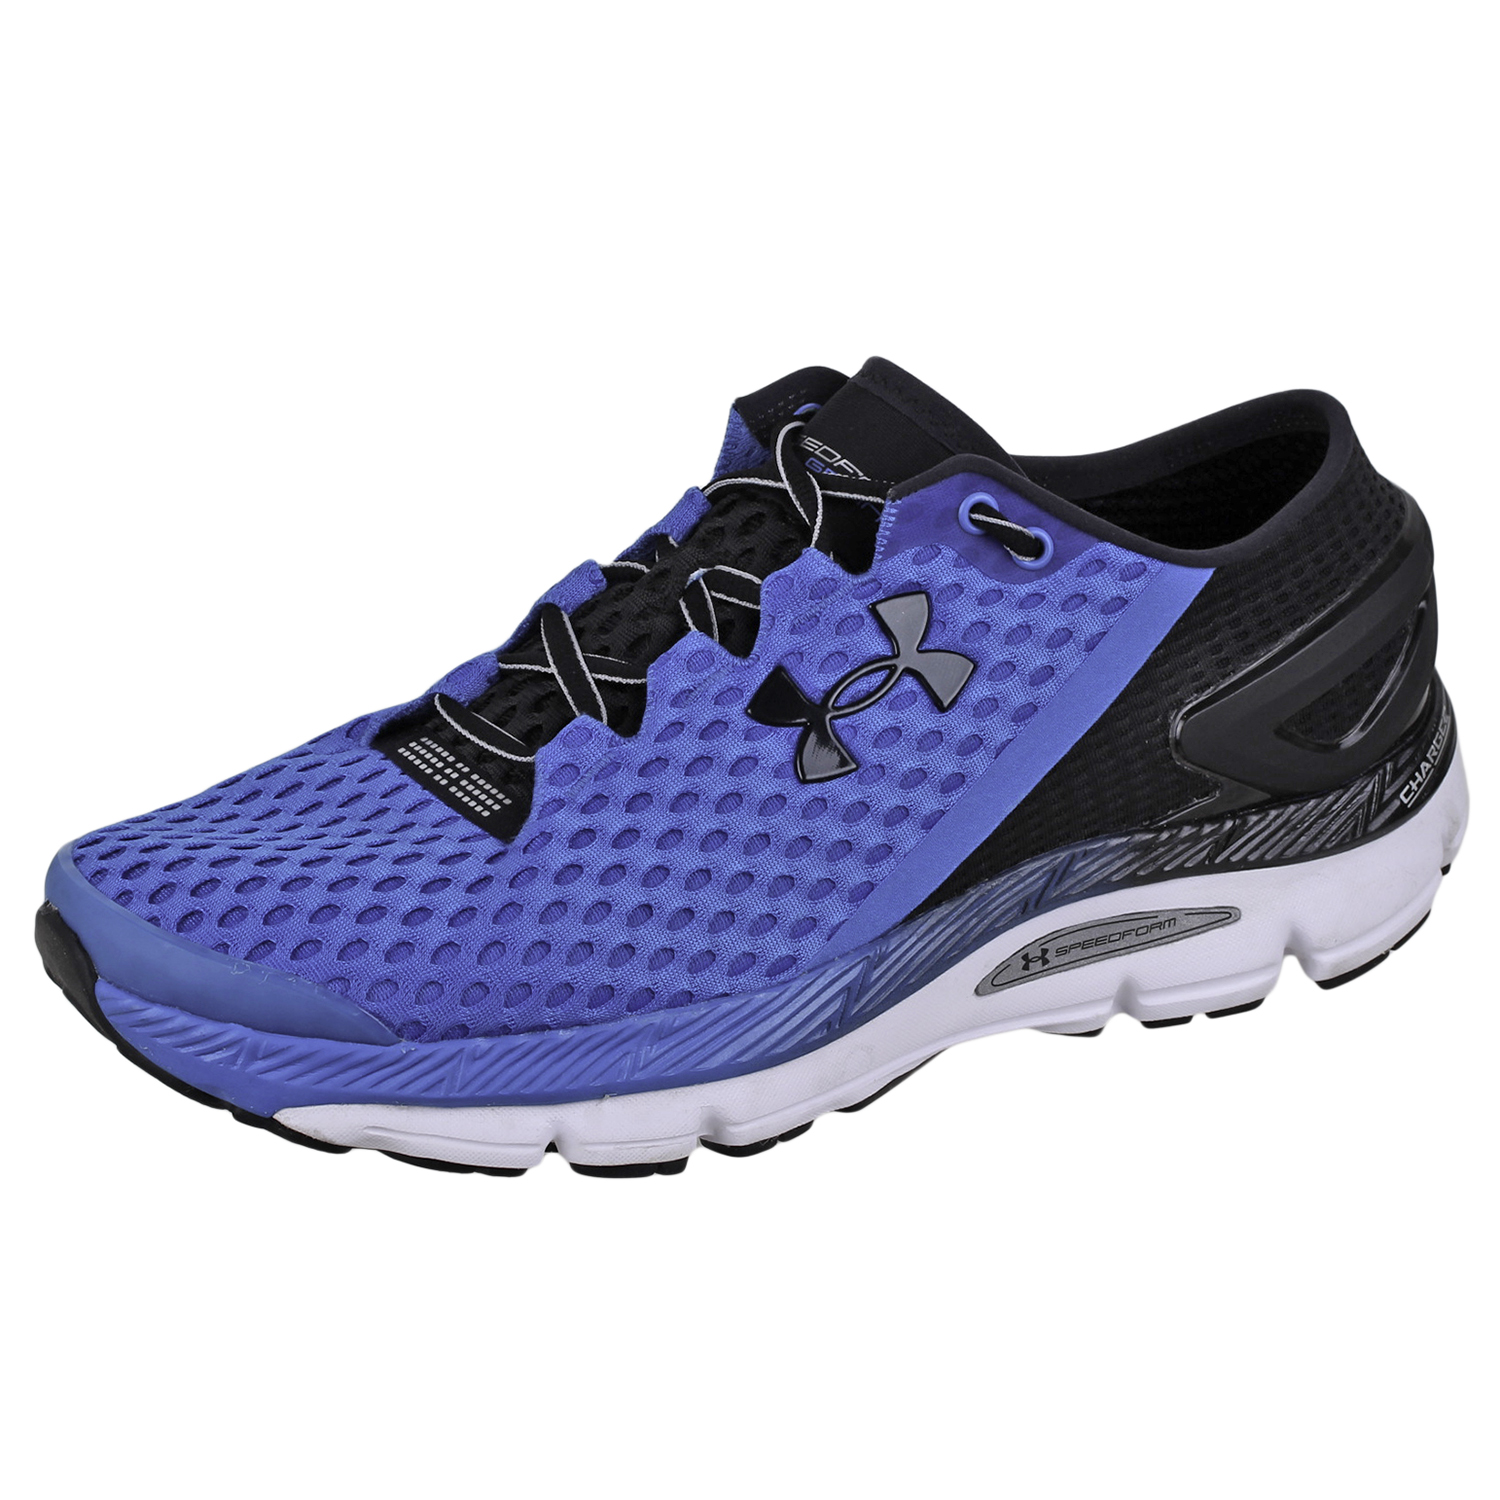 Details about Under Armour Mens Speed Form Gemini 2 Run Shoes 1266212 Blue  Black White 10 5c1b57a4818